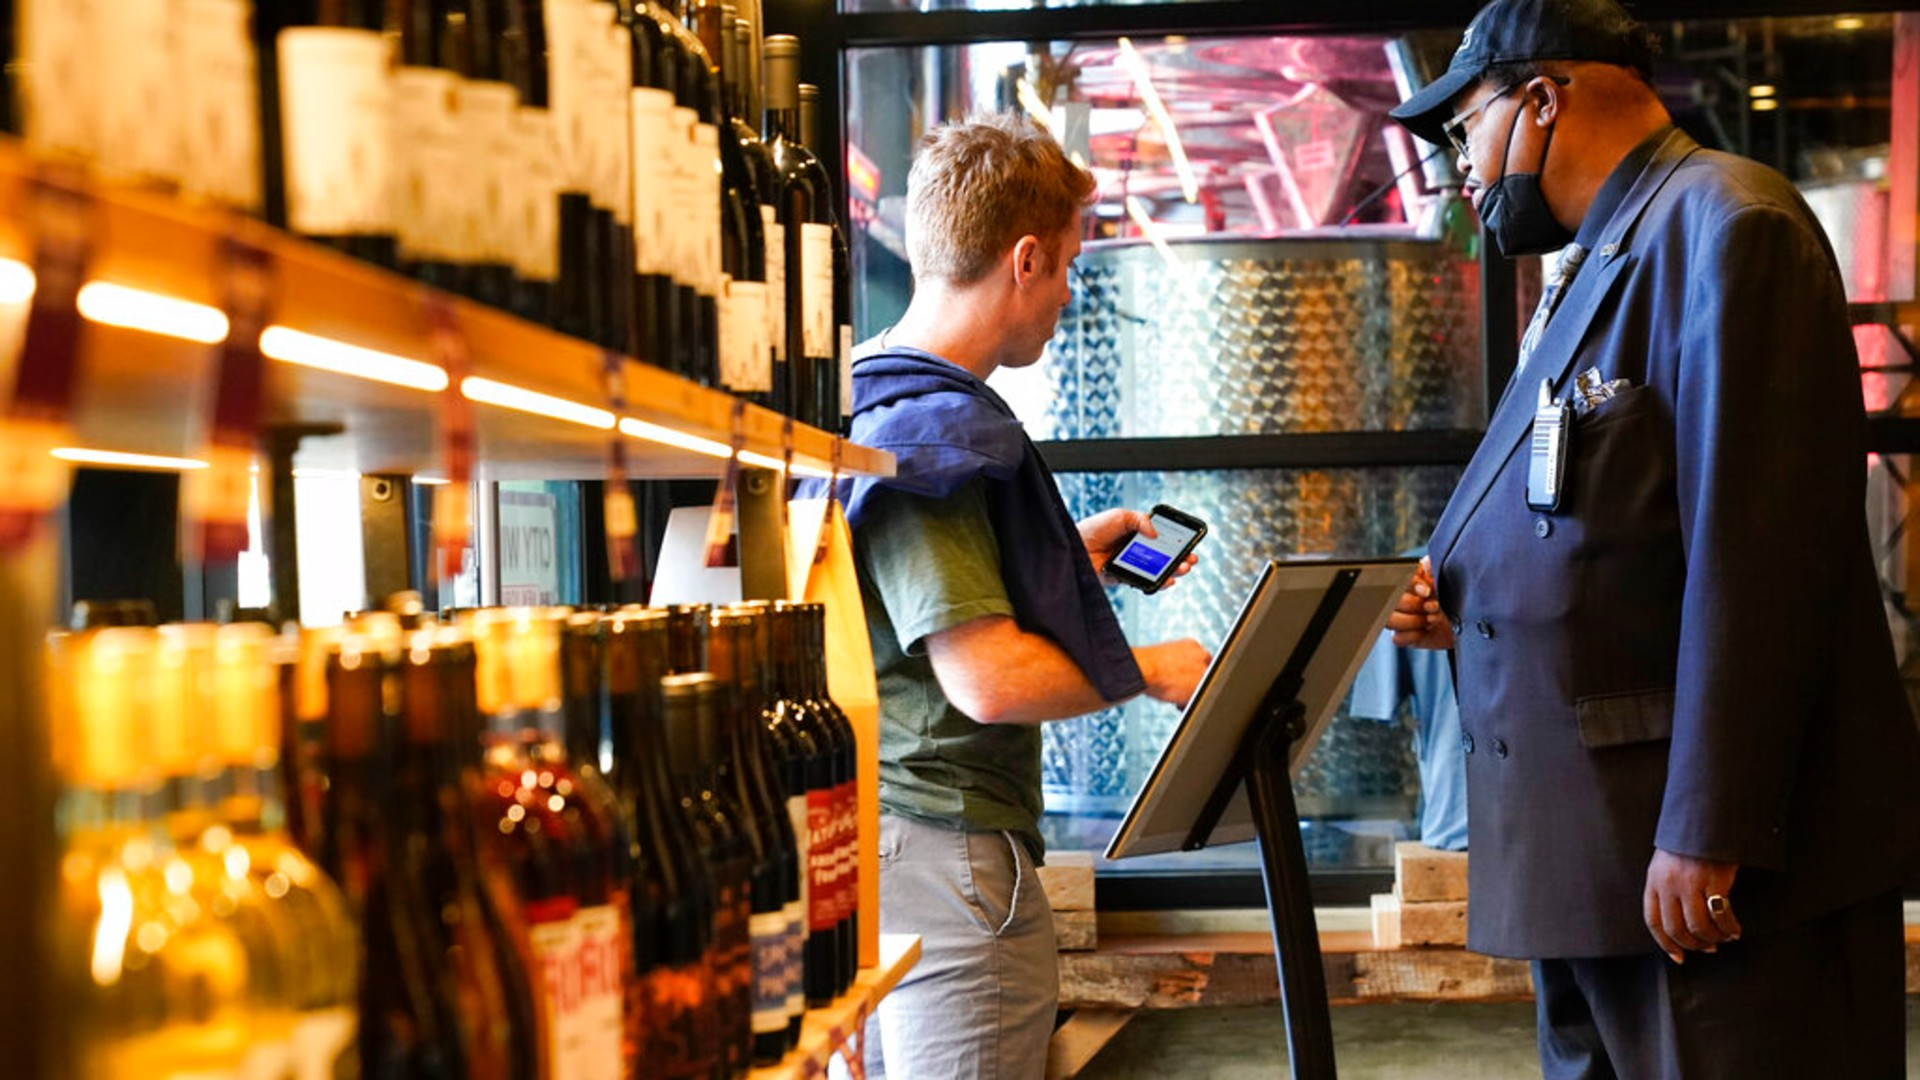 Security personnel ask customers for proof of vaccination as they enter City Winery Thursday, June 24, 2021, in New York. (AP Photo/Frank Franklin II)